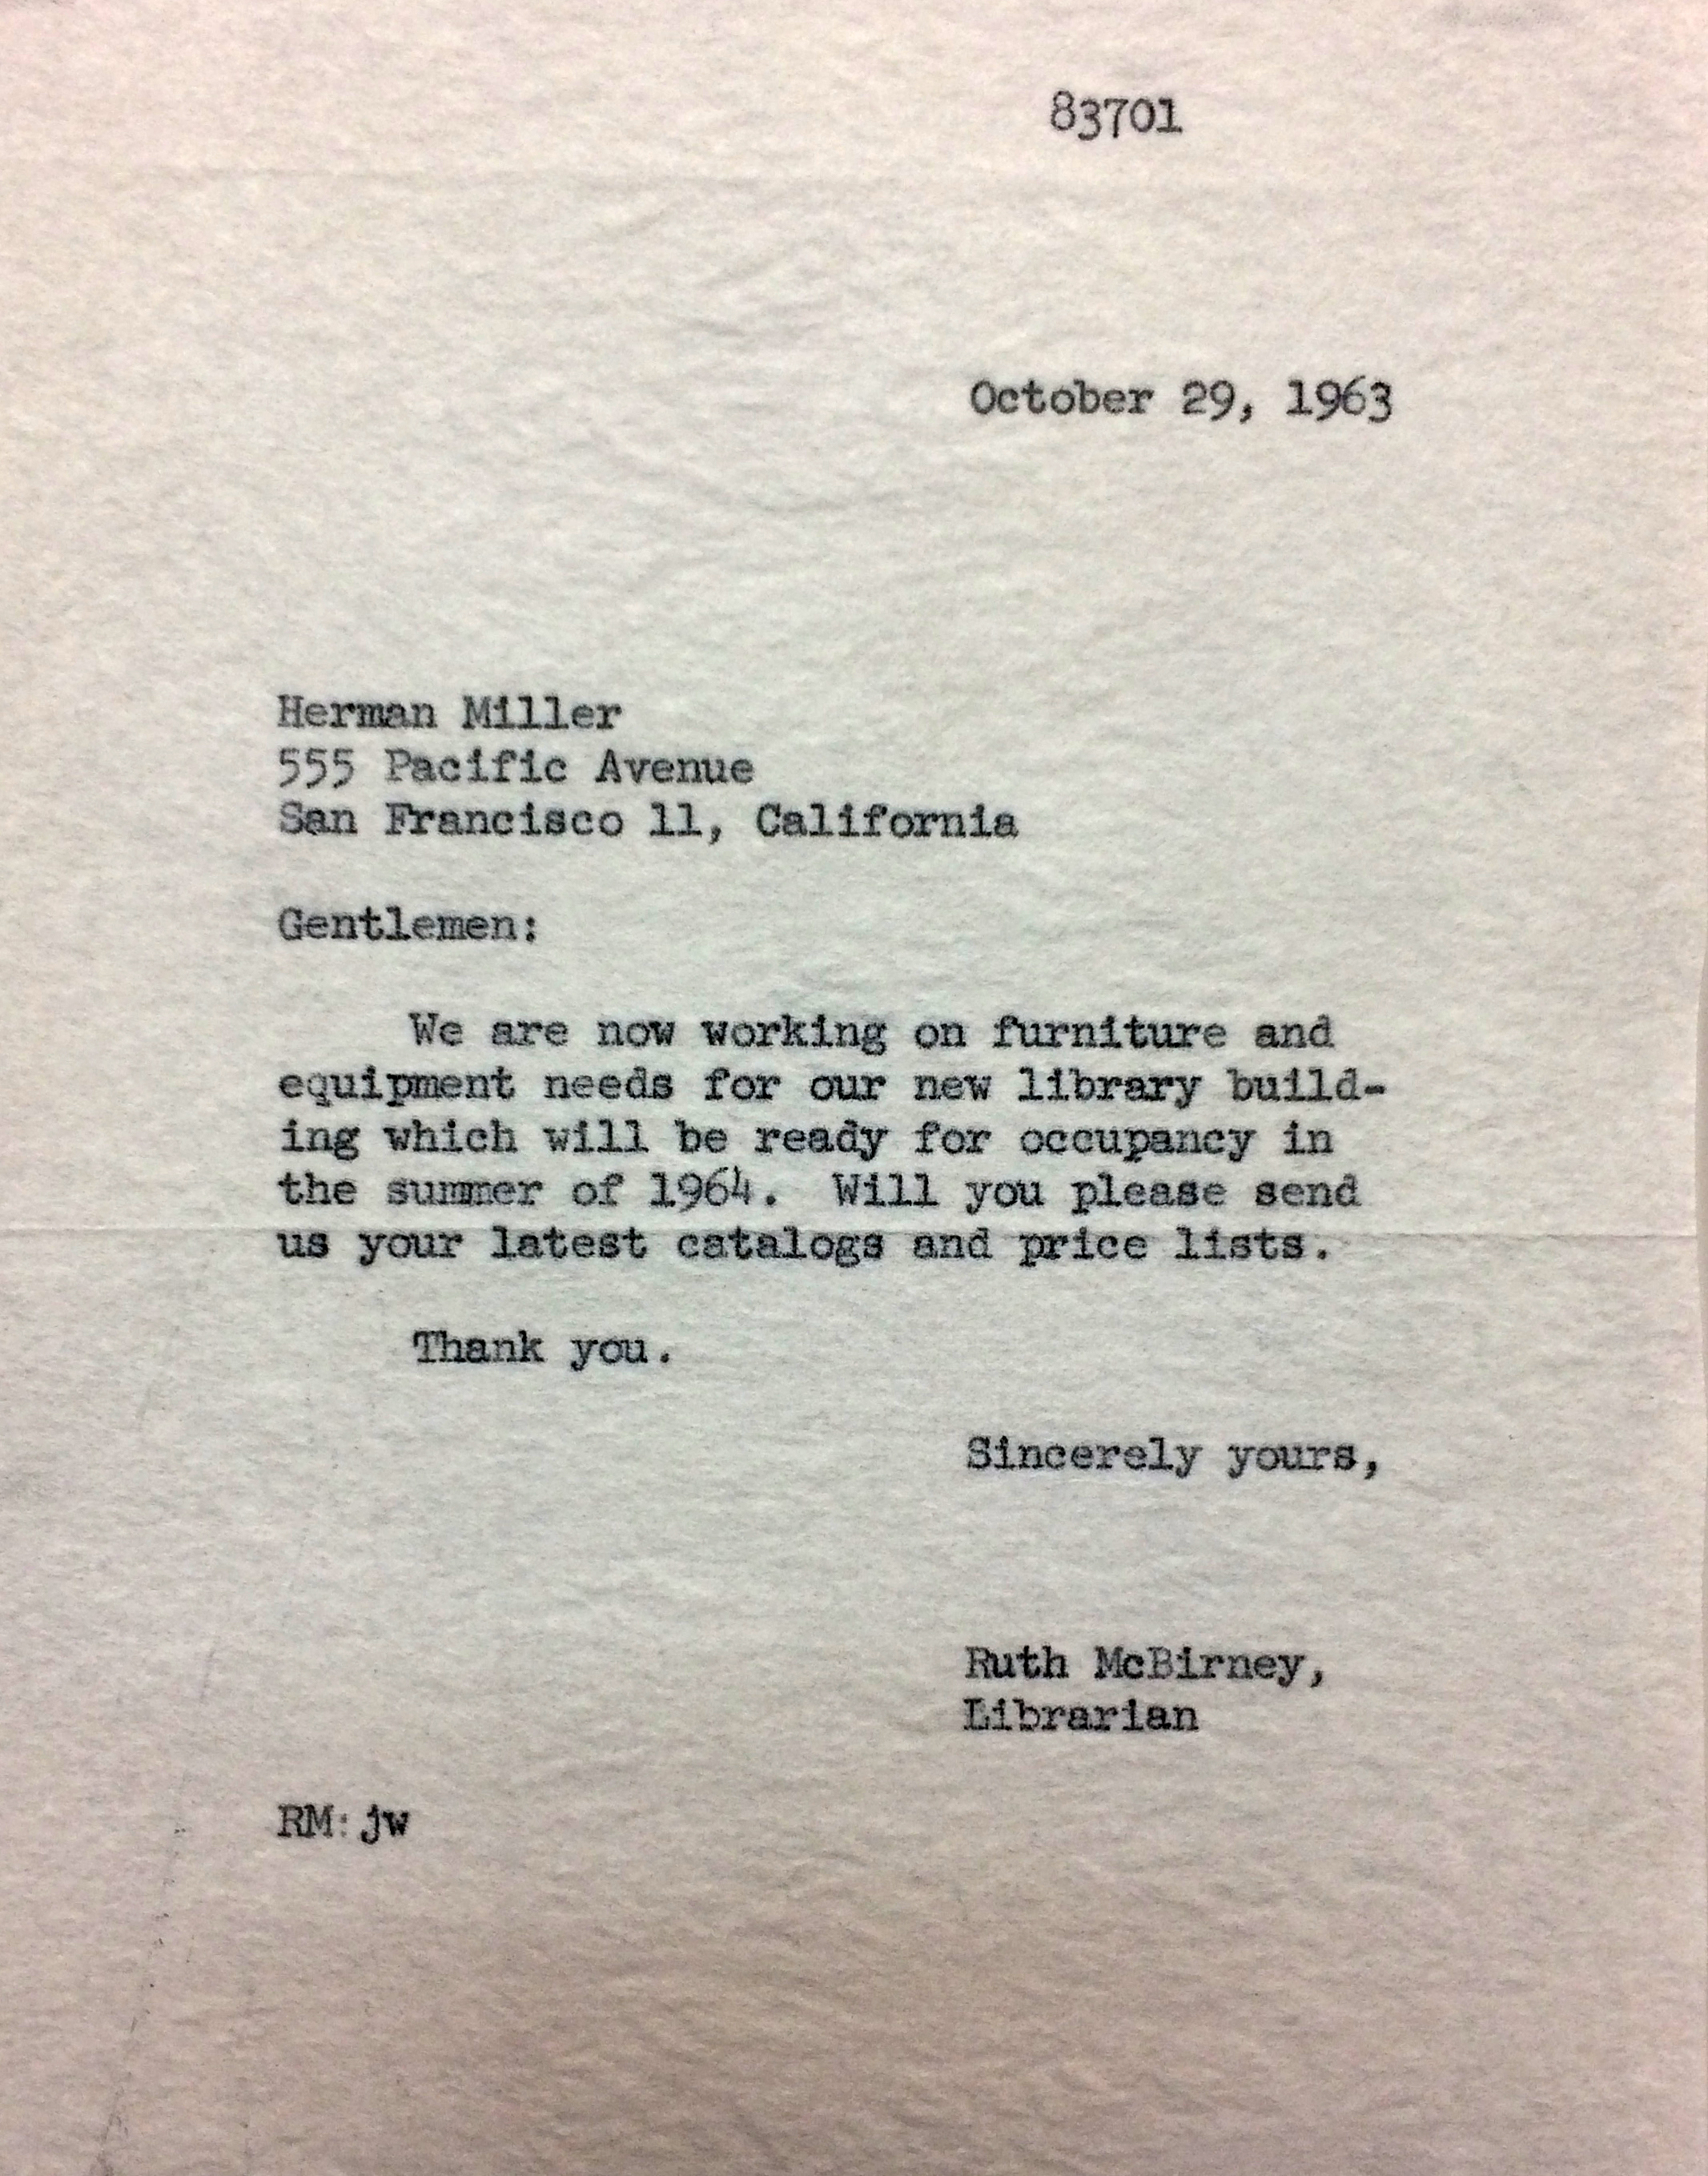 Miss Ruth McBirney, Head Librarian's letter to Herman Miller requesting a catalog of furniture and price lists for the new Library Building.